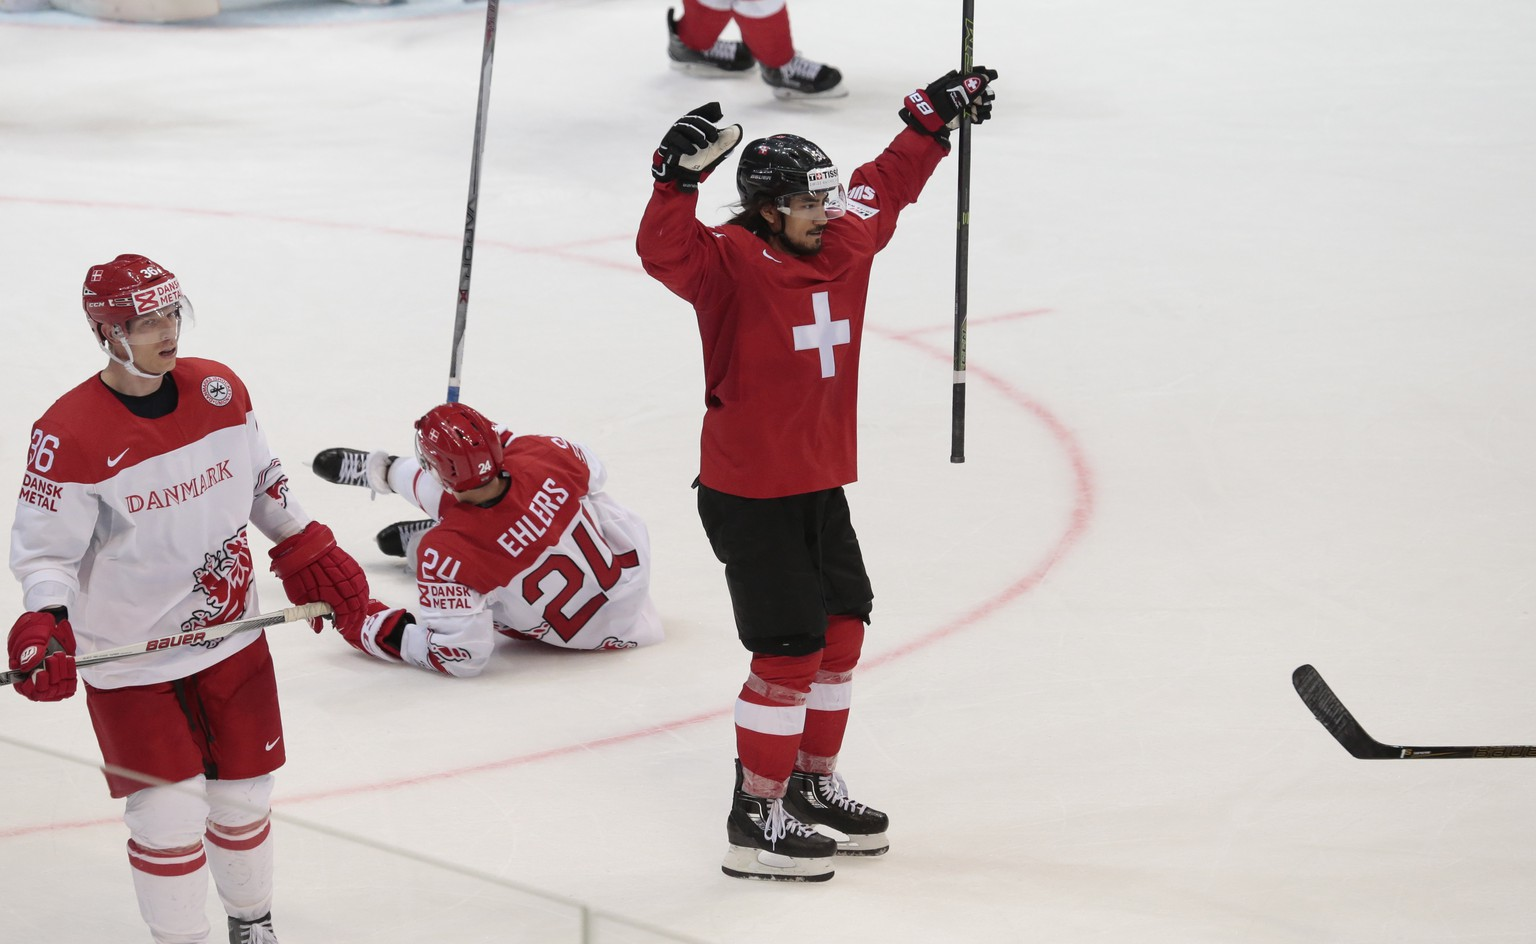 Switzerland's Eric Blum reacts after scoring